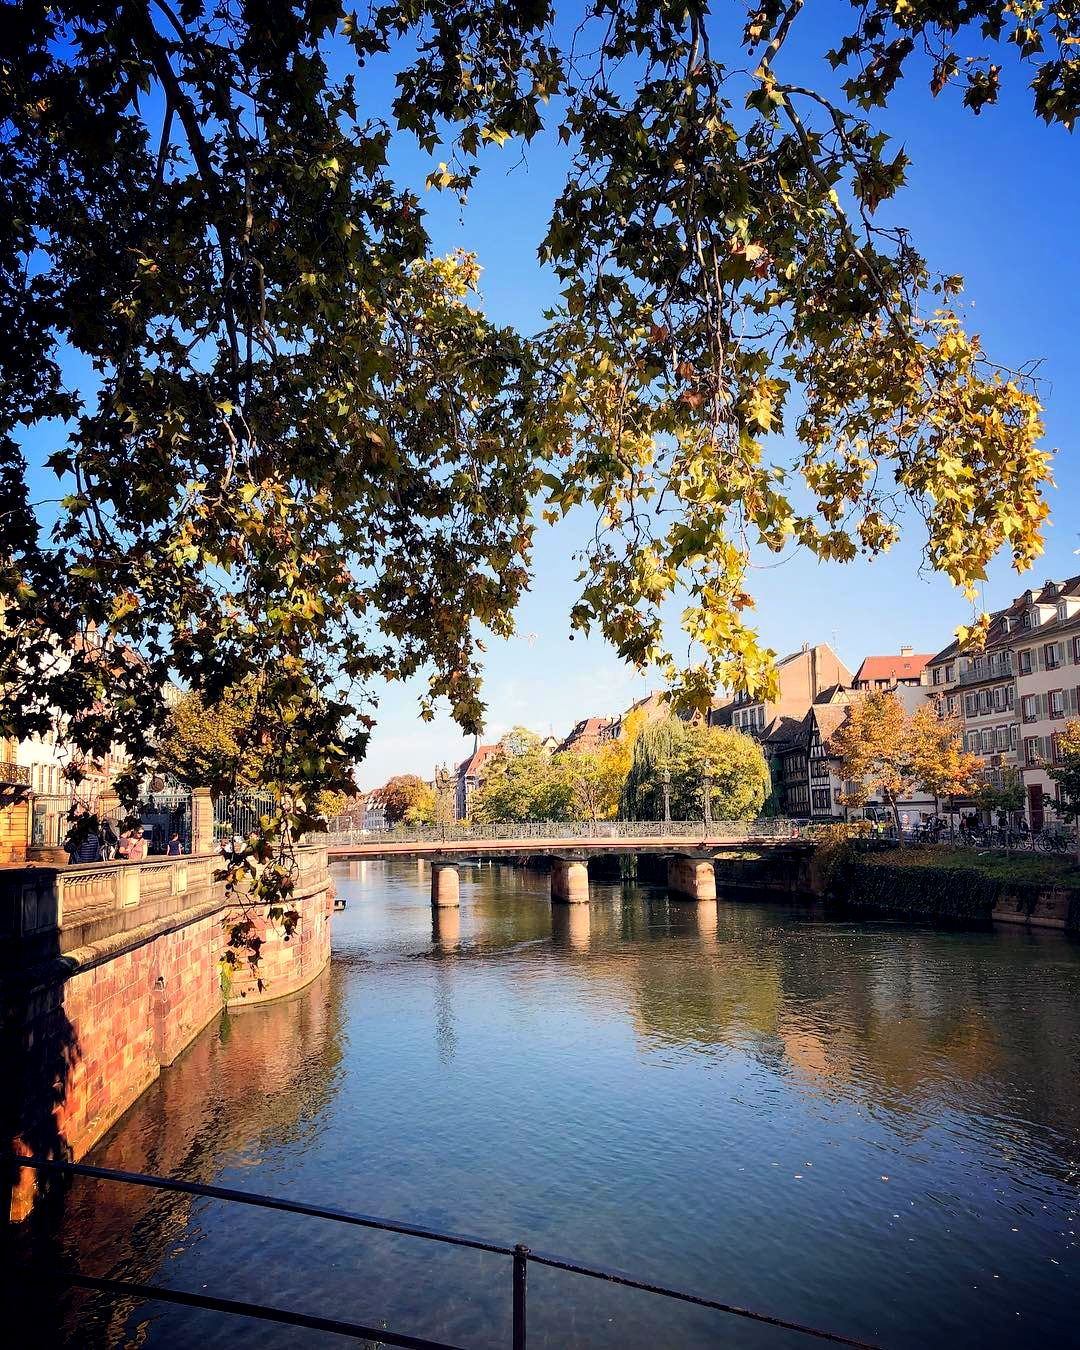 The River Ill, Strasbourg, France. A Day Trip from Paris to Strasbourg.